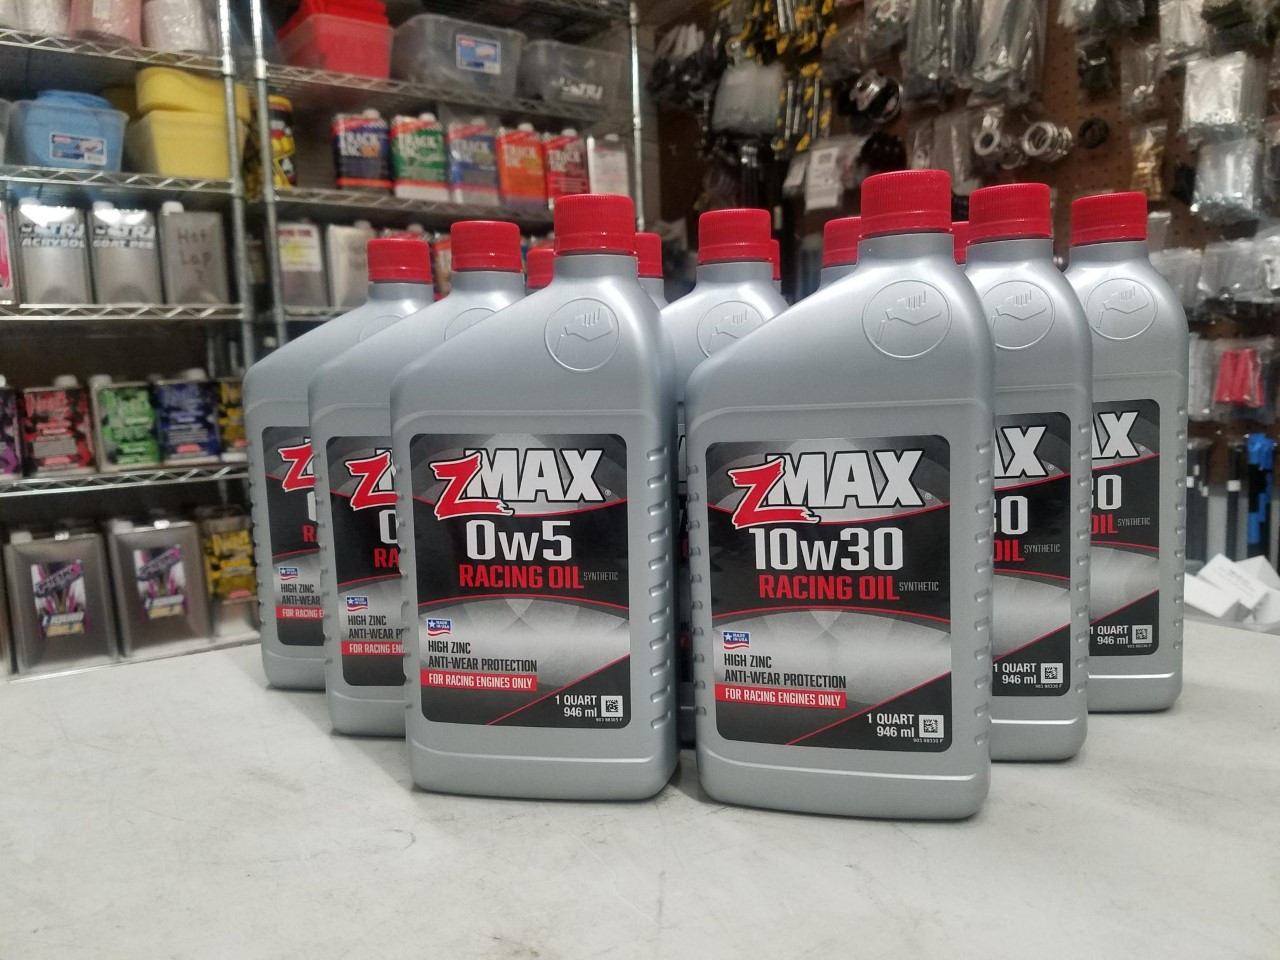 zMAX 20w50 Racing Oil - Gallon - Case of 4